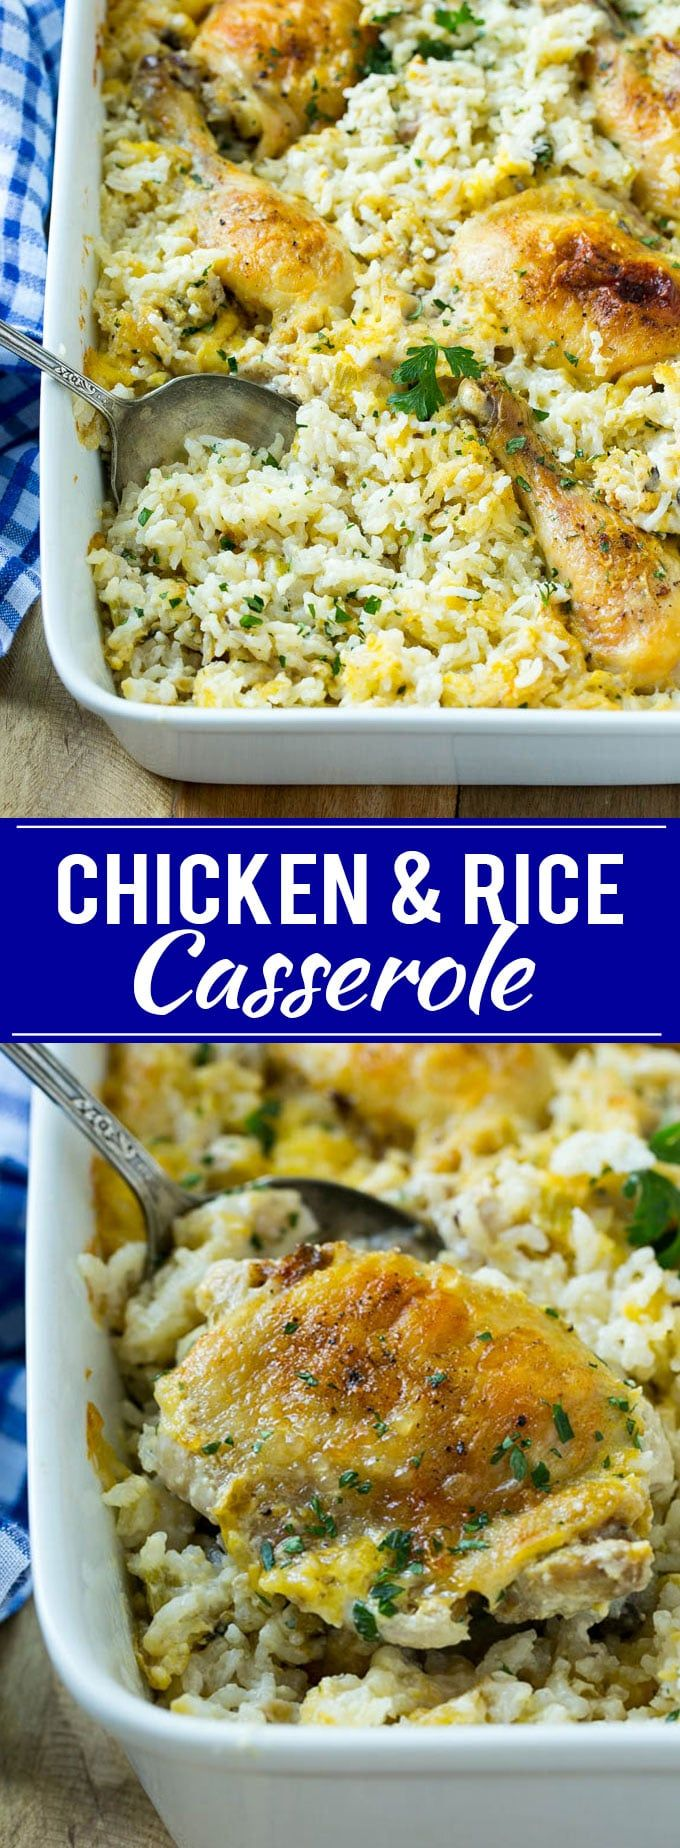 Chicken and Rice Casserole Recipe | Chicken and Rice Bake | Cream of Mushroom Chicken Casserole | Chicken Casserole Recipe